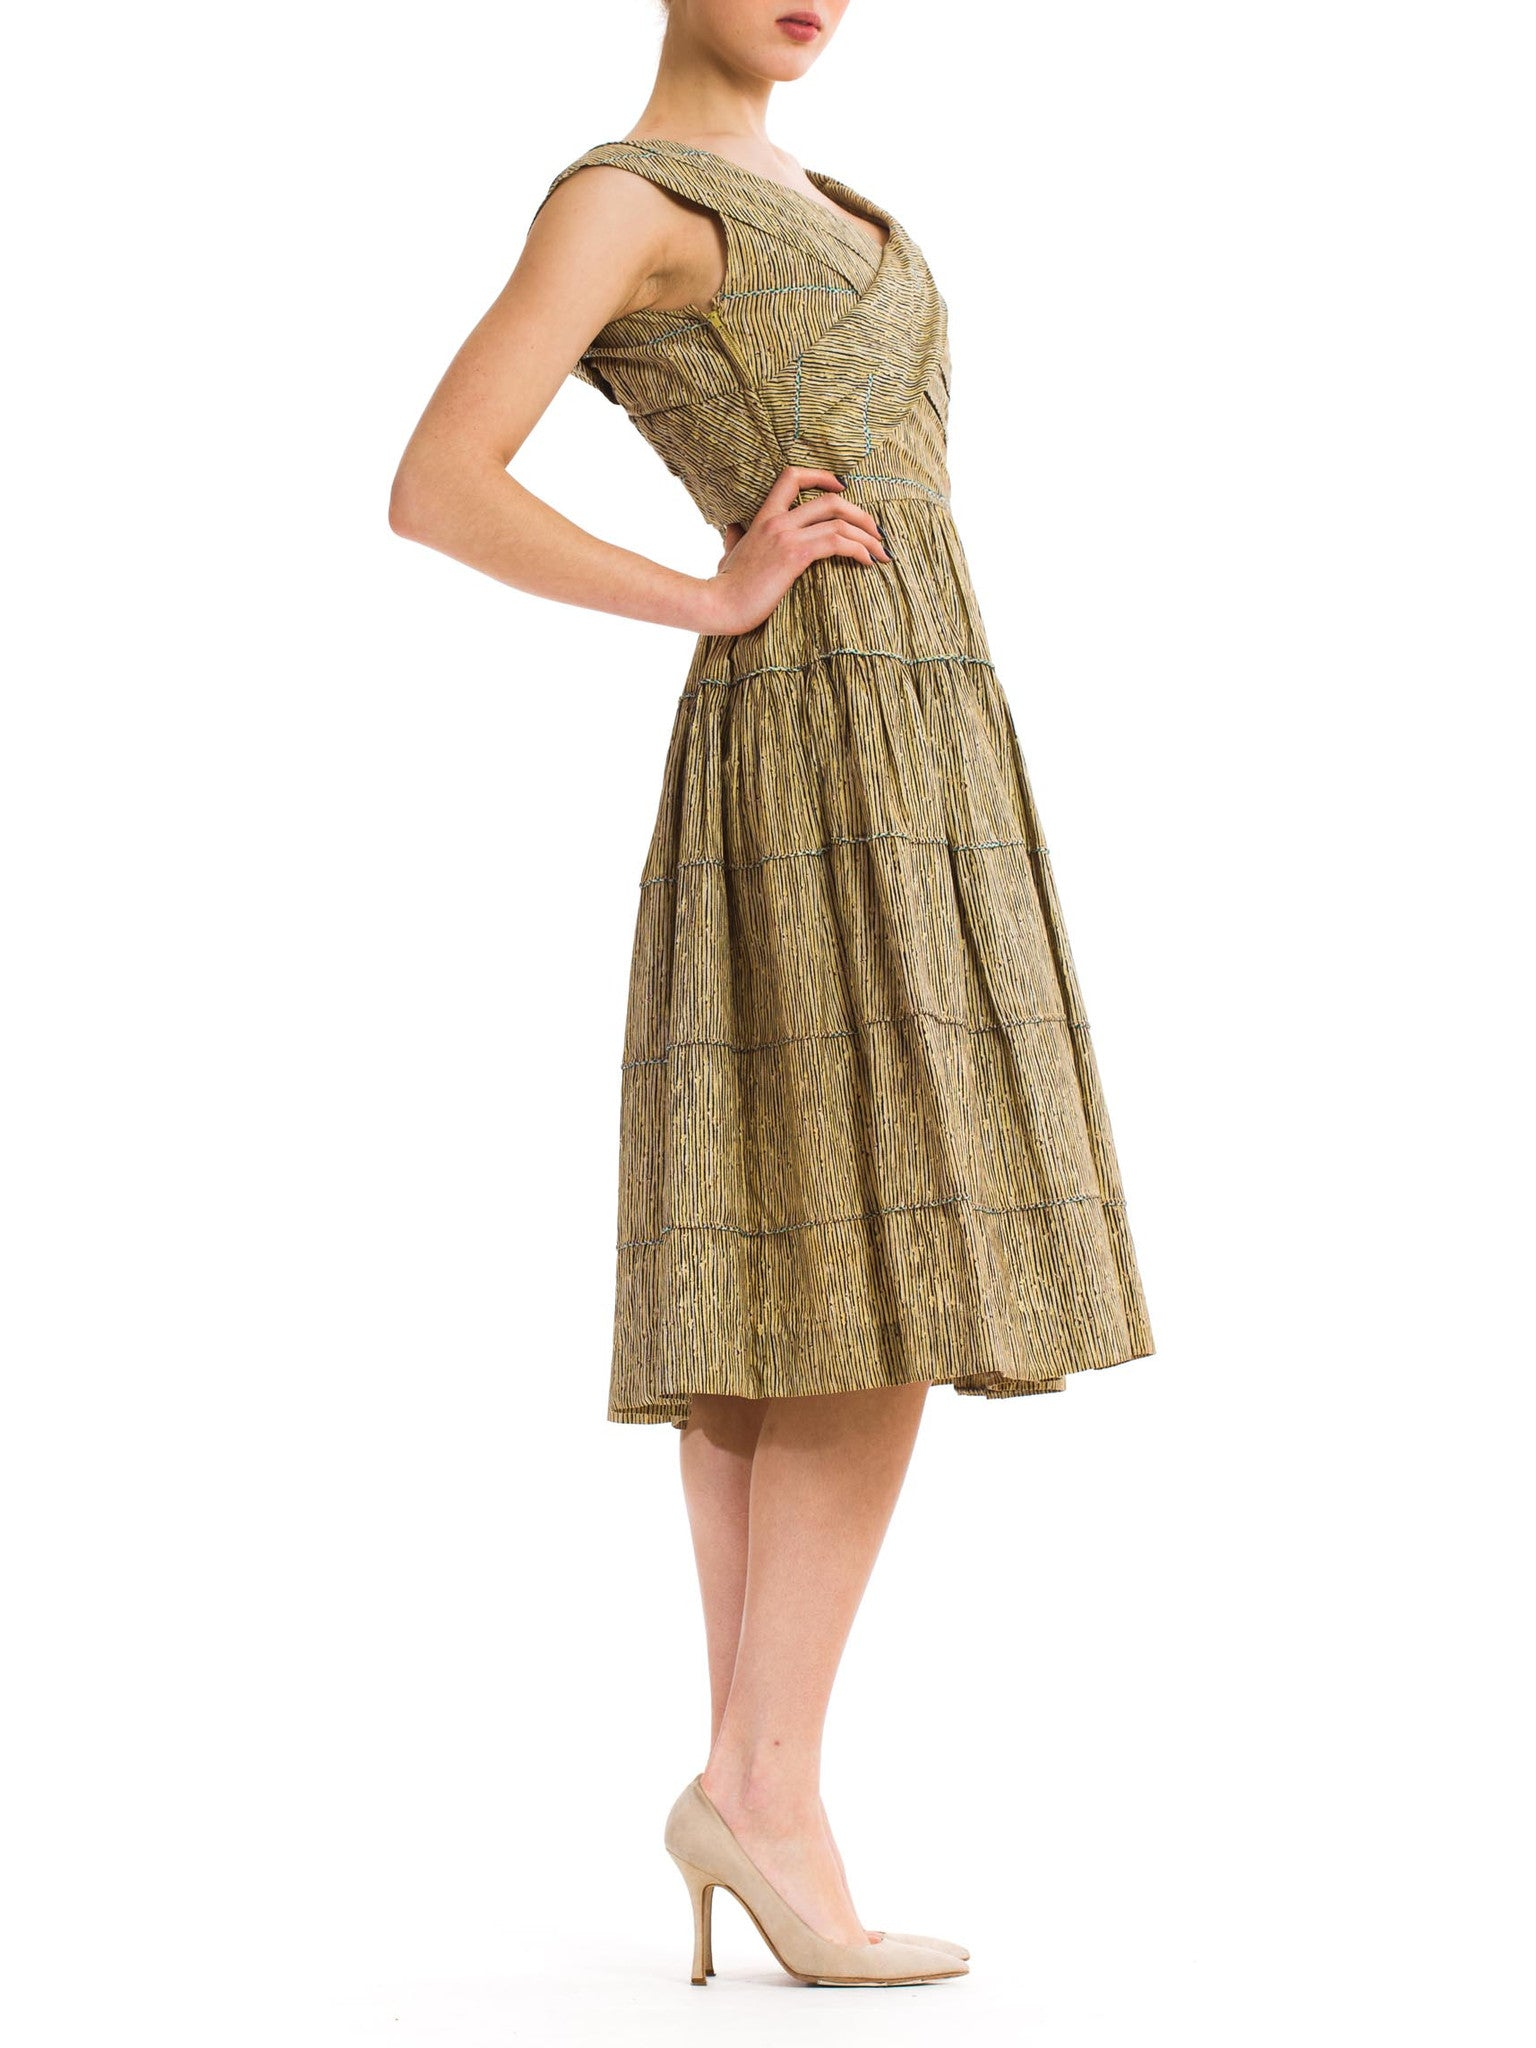 Darling Vintage 1980s Neutral Toned Dress with Wide Skirt